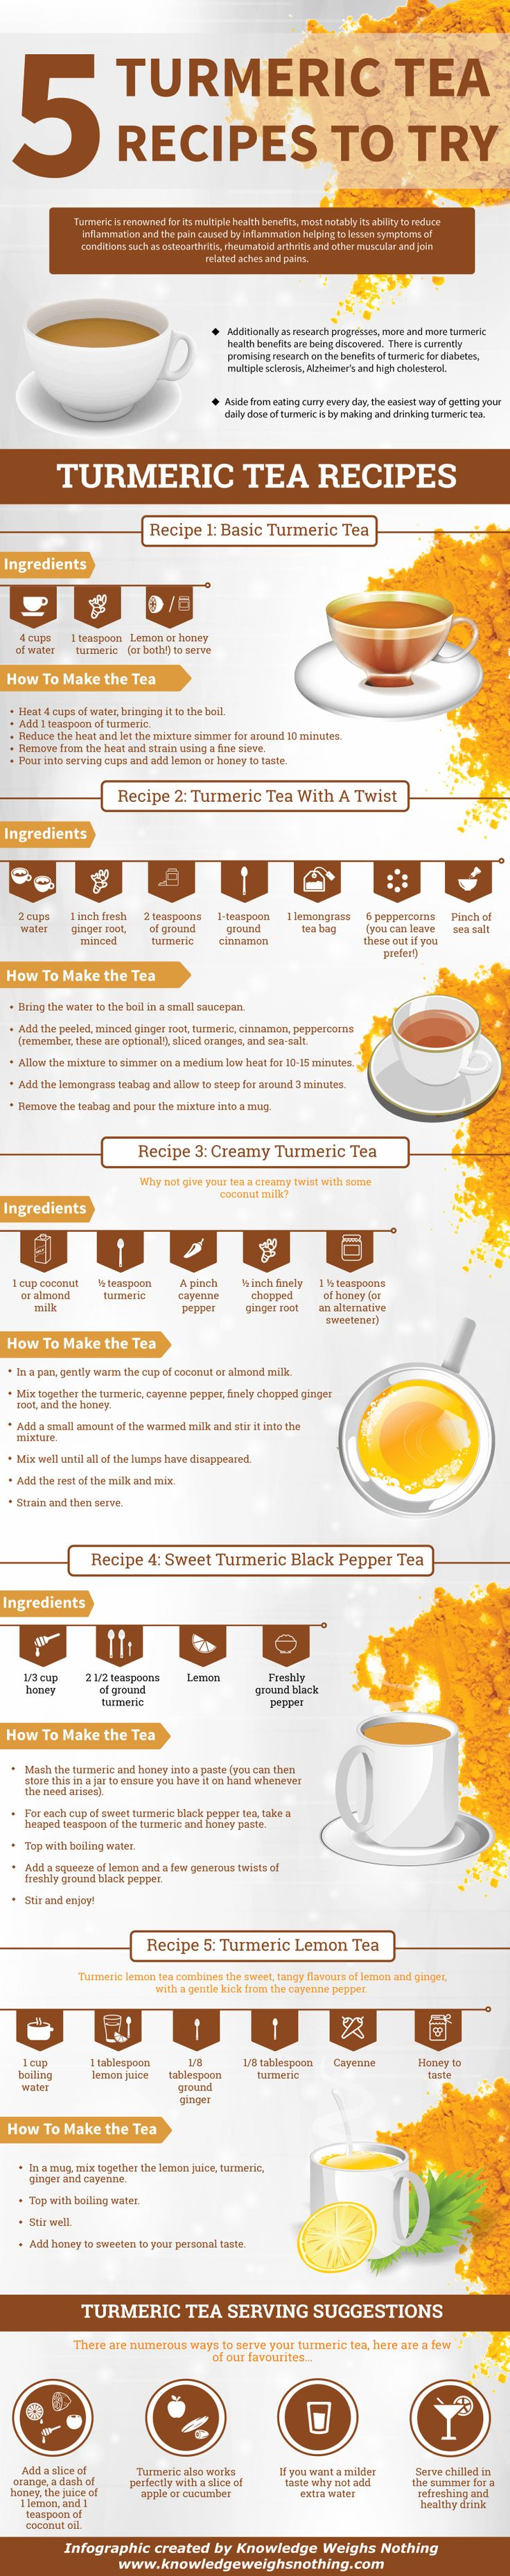 Turmeric Tea Benefits & 5 Turmeric Tea Recipes To Try Visit https://id.pinterest.com/pin/393431717429777093/